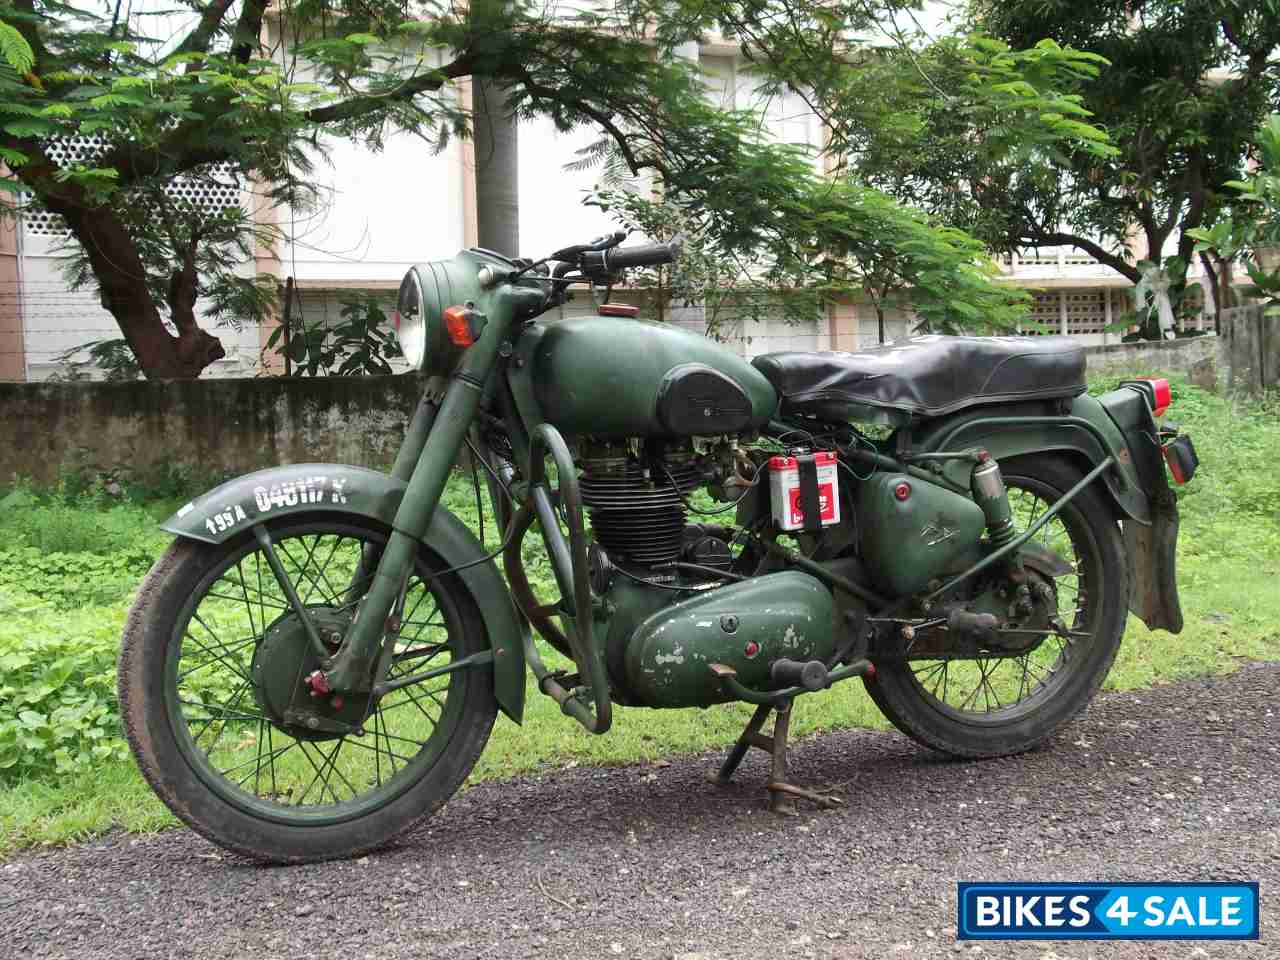 Used 1999 Model Royal Enfield Bullet Standard 350 For Sale In Nagpur Id 57028 Military Green Colour Bikes4sale